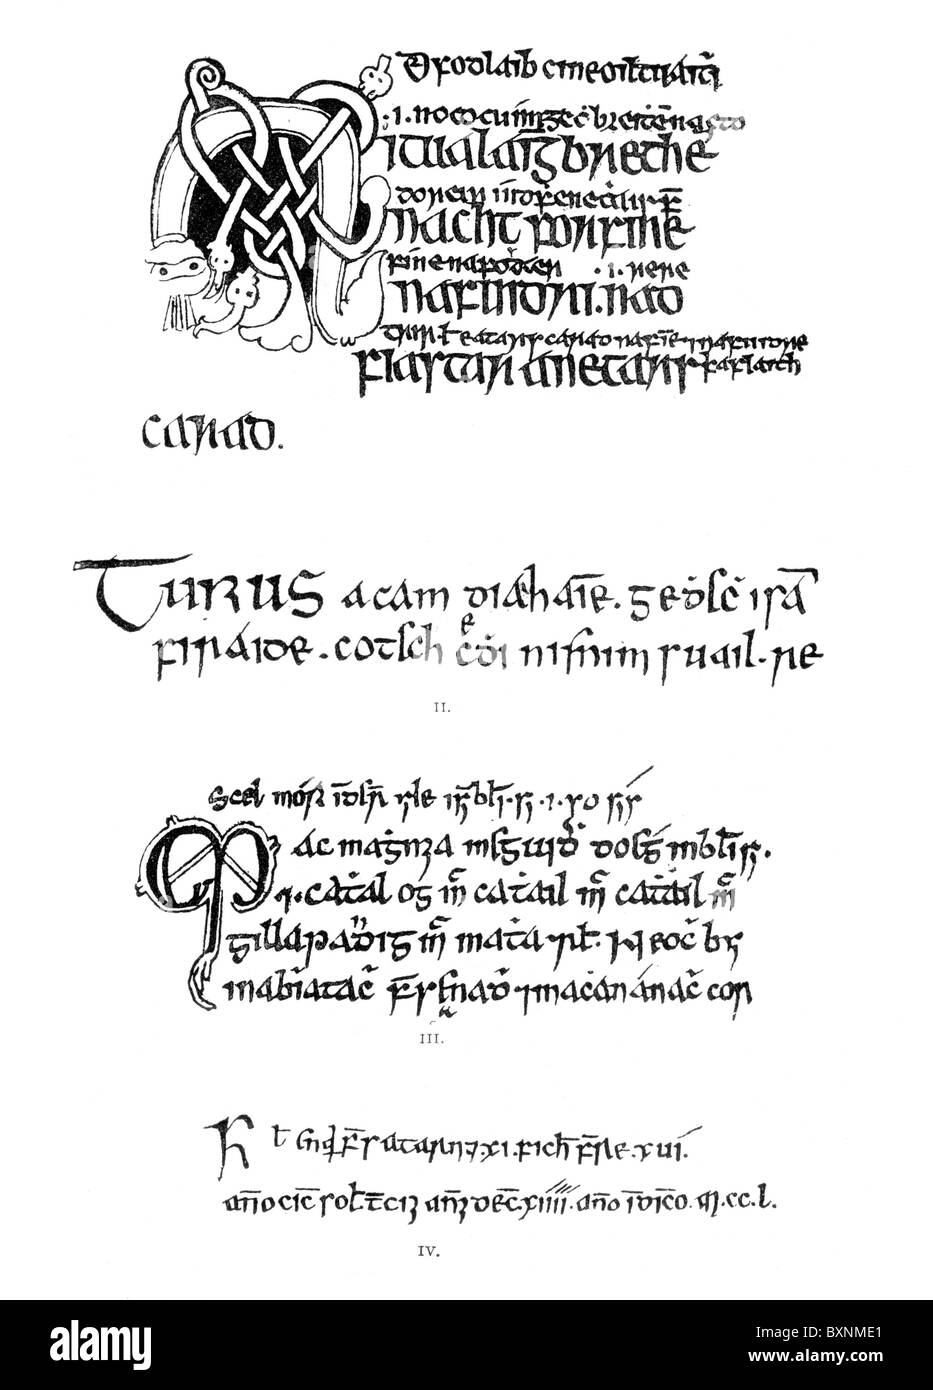 Specimins of Irish writings between 1300 and 1588, Black and White Illustration; - Stock Image